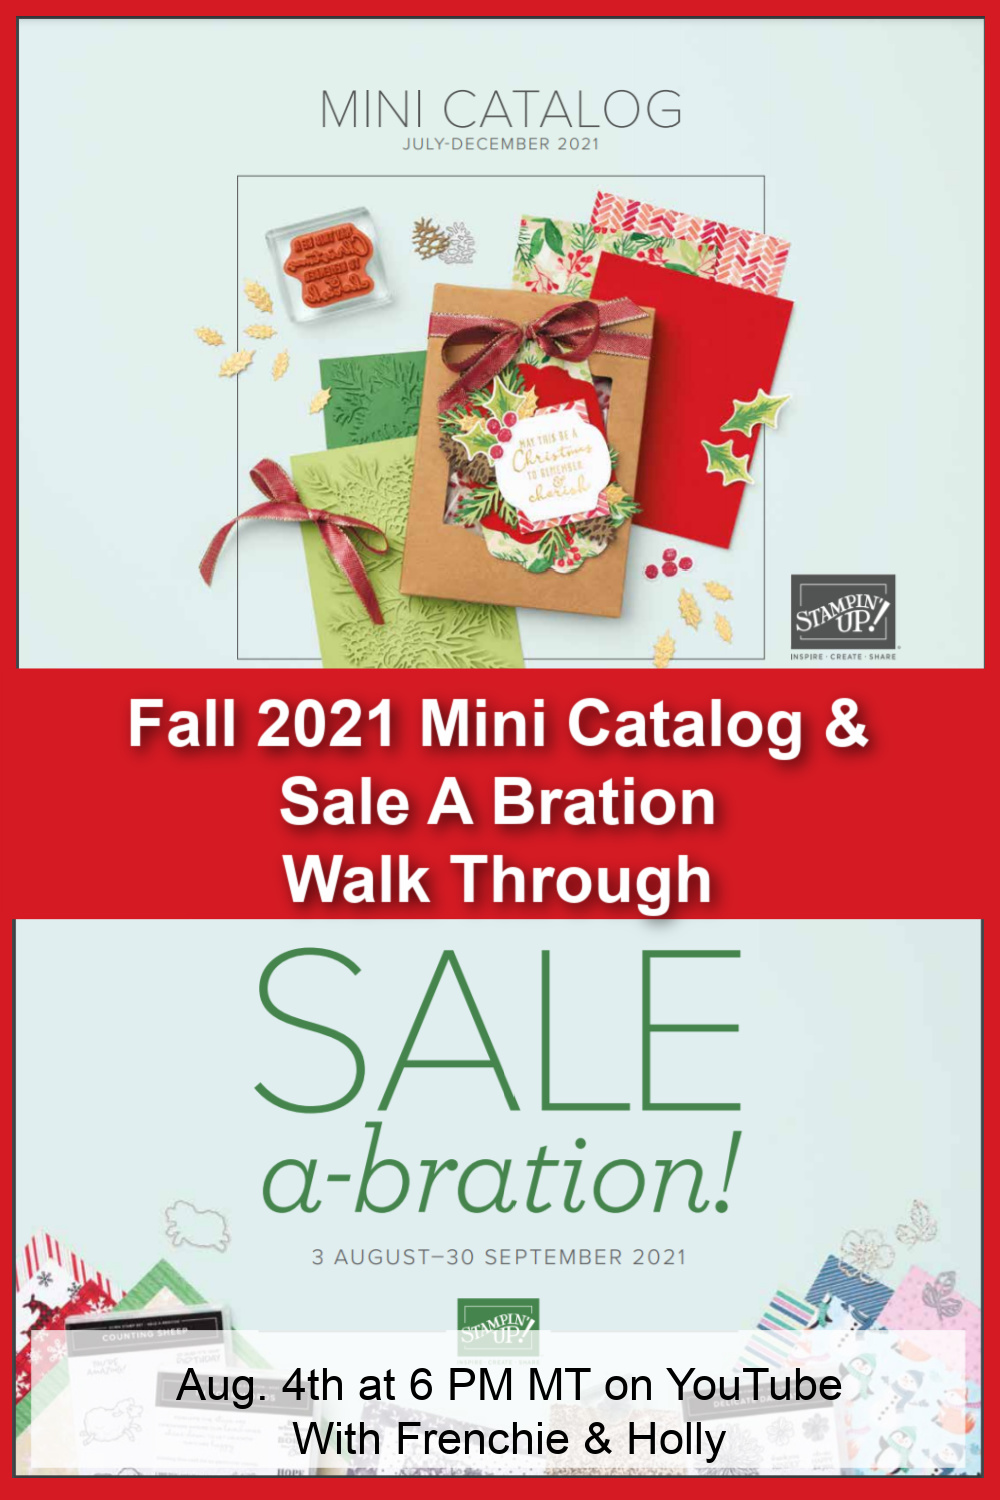 Walk Through Of the 2021 Fall Catalog and Sale A Bration.